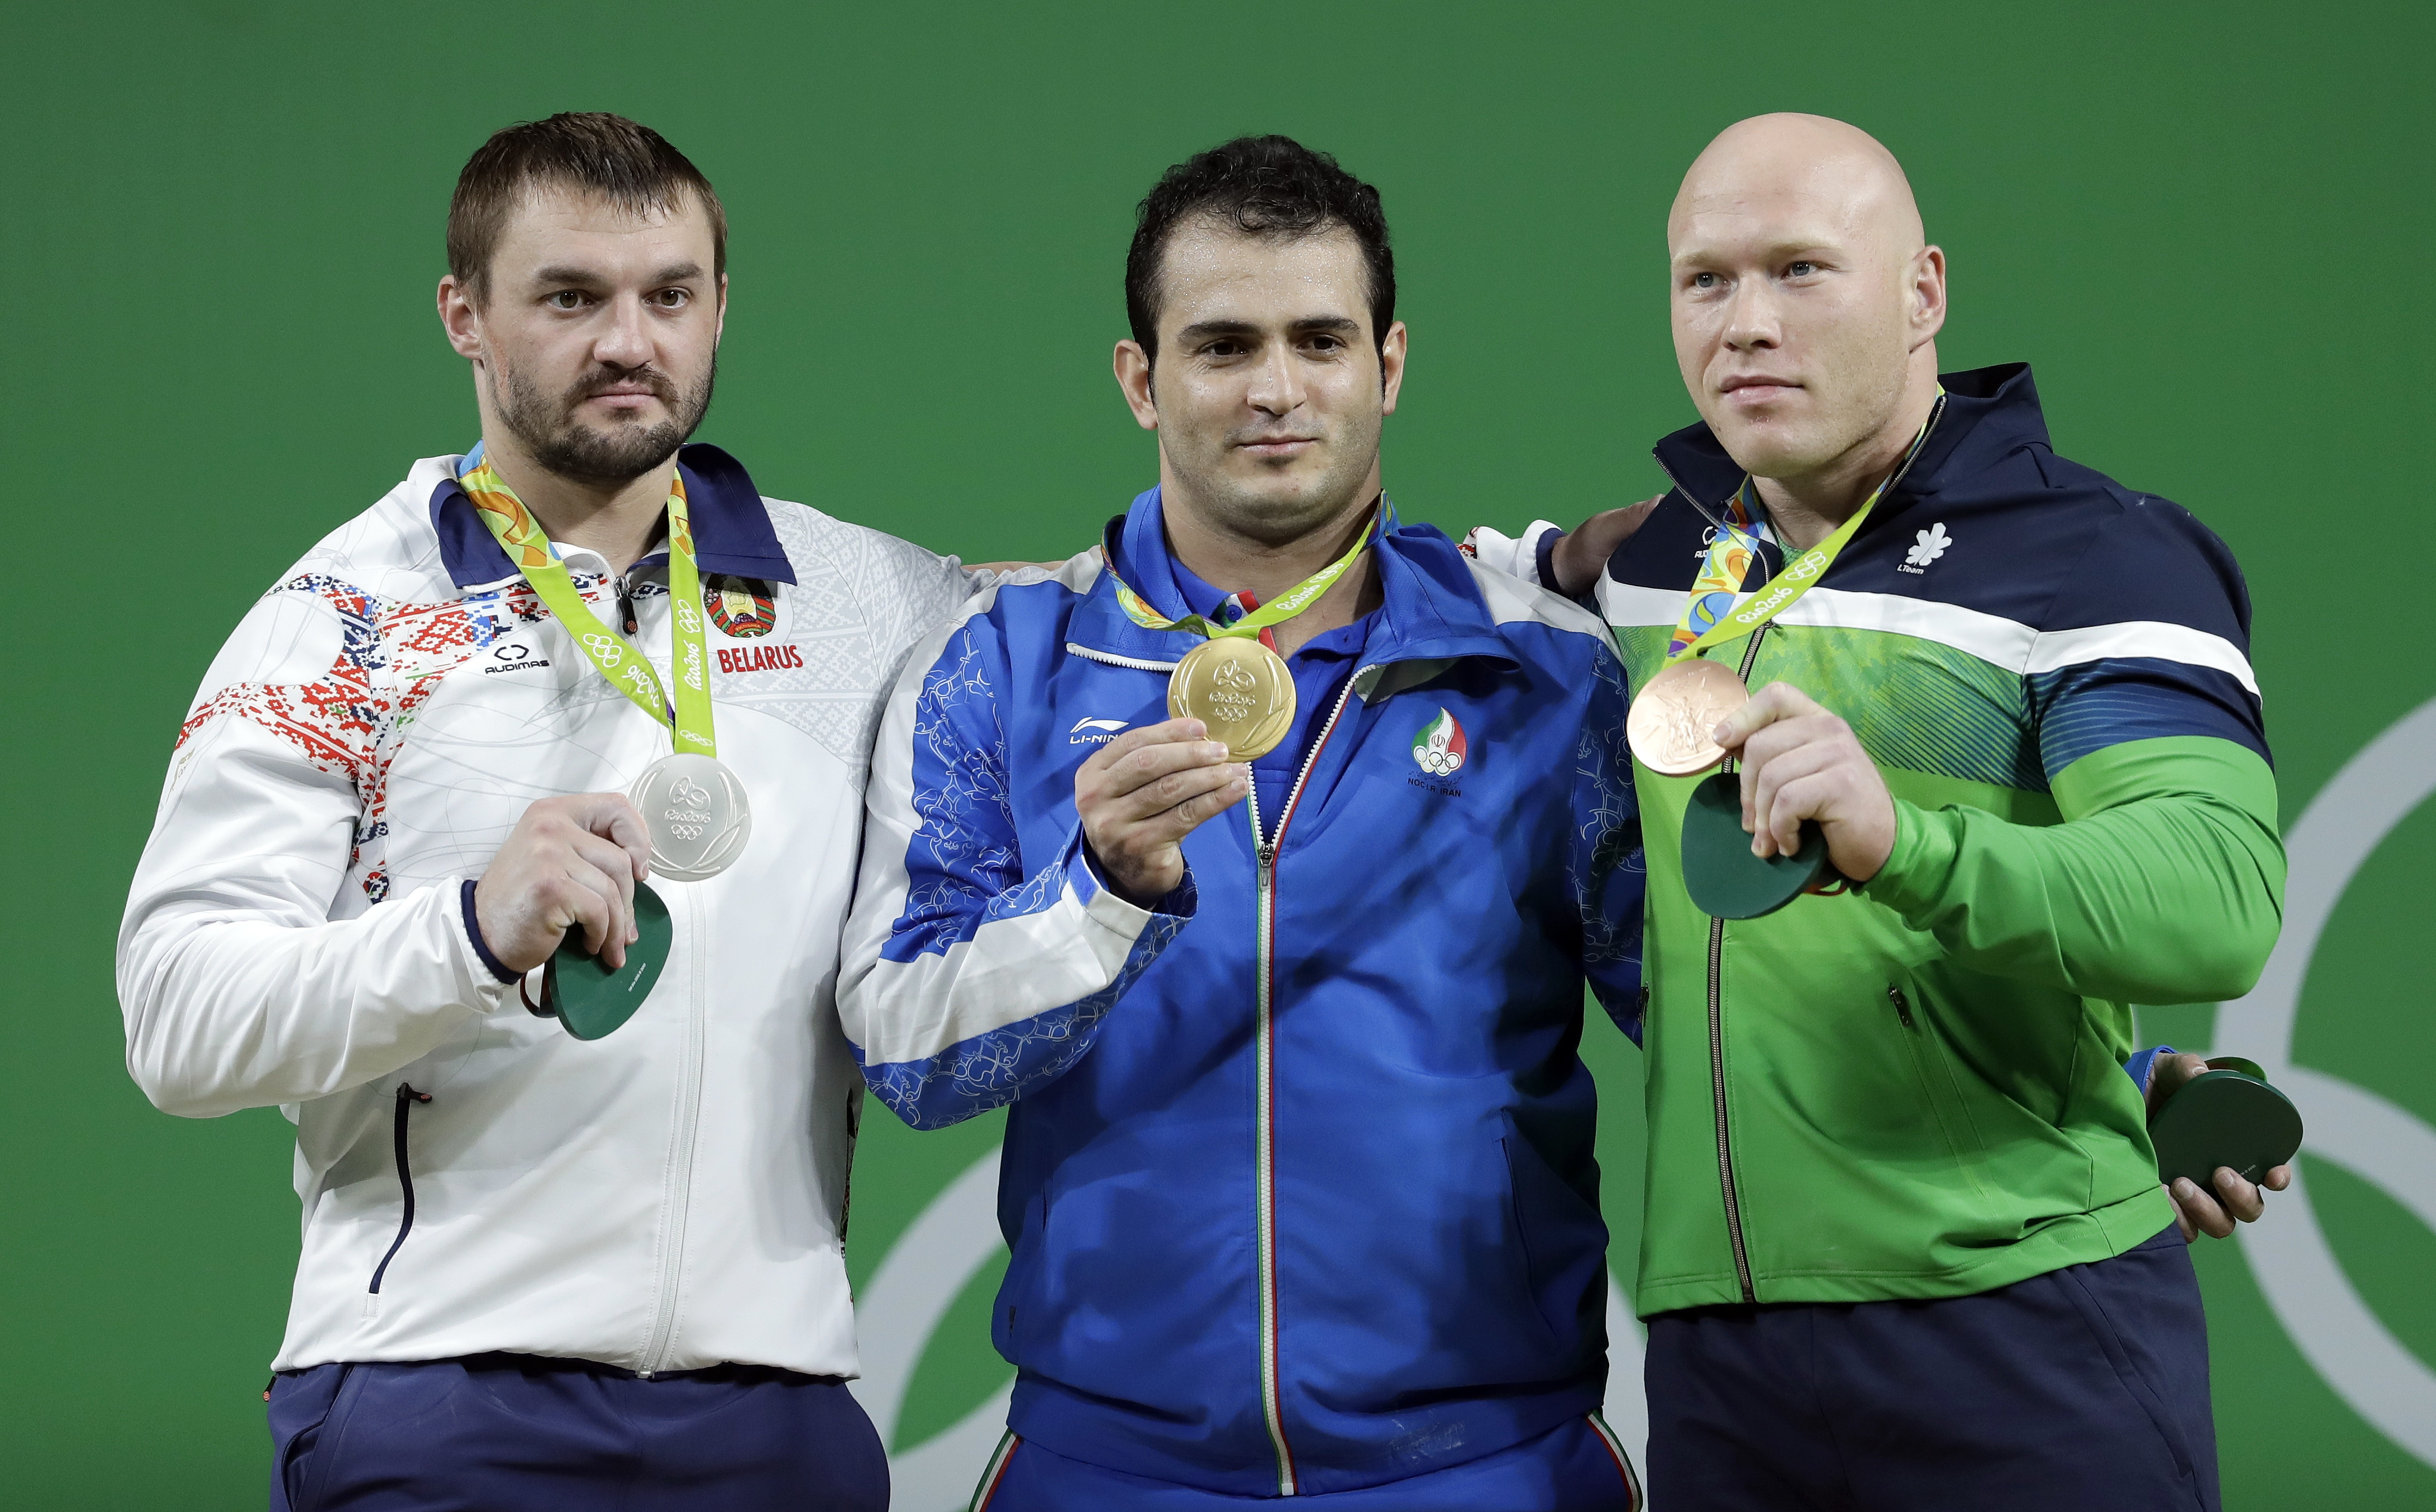 Gold medalist Sohrab Moradi, of Iran, center, is joined on the winner's stand by silver medalist Vadzim Straltsou, of Belarus, left, and bronze medalist Aurimas Didzbalis, of Lithuania, right, during the awards ceremony for the men's 94kg weightlifting co